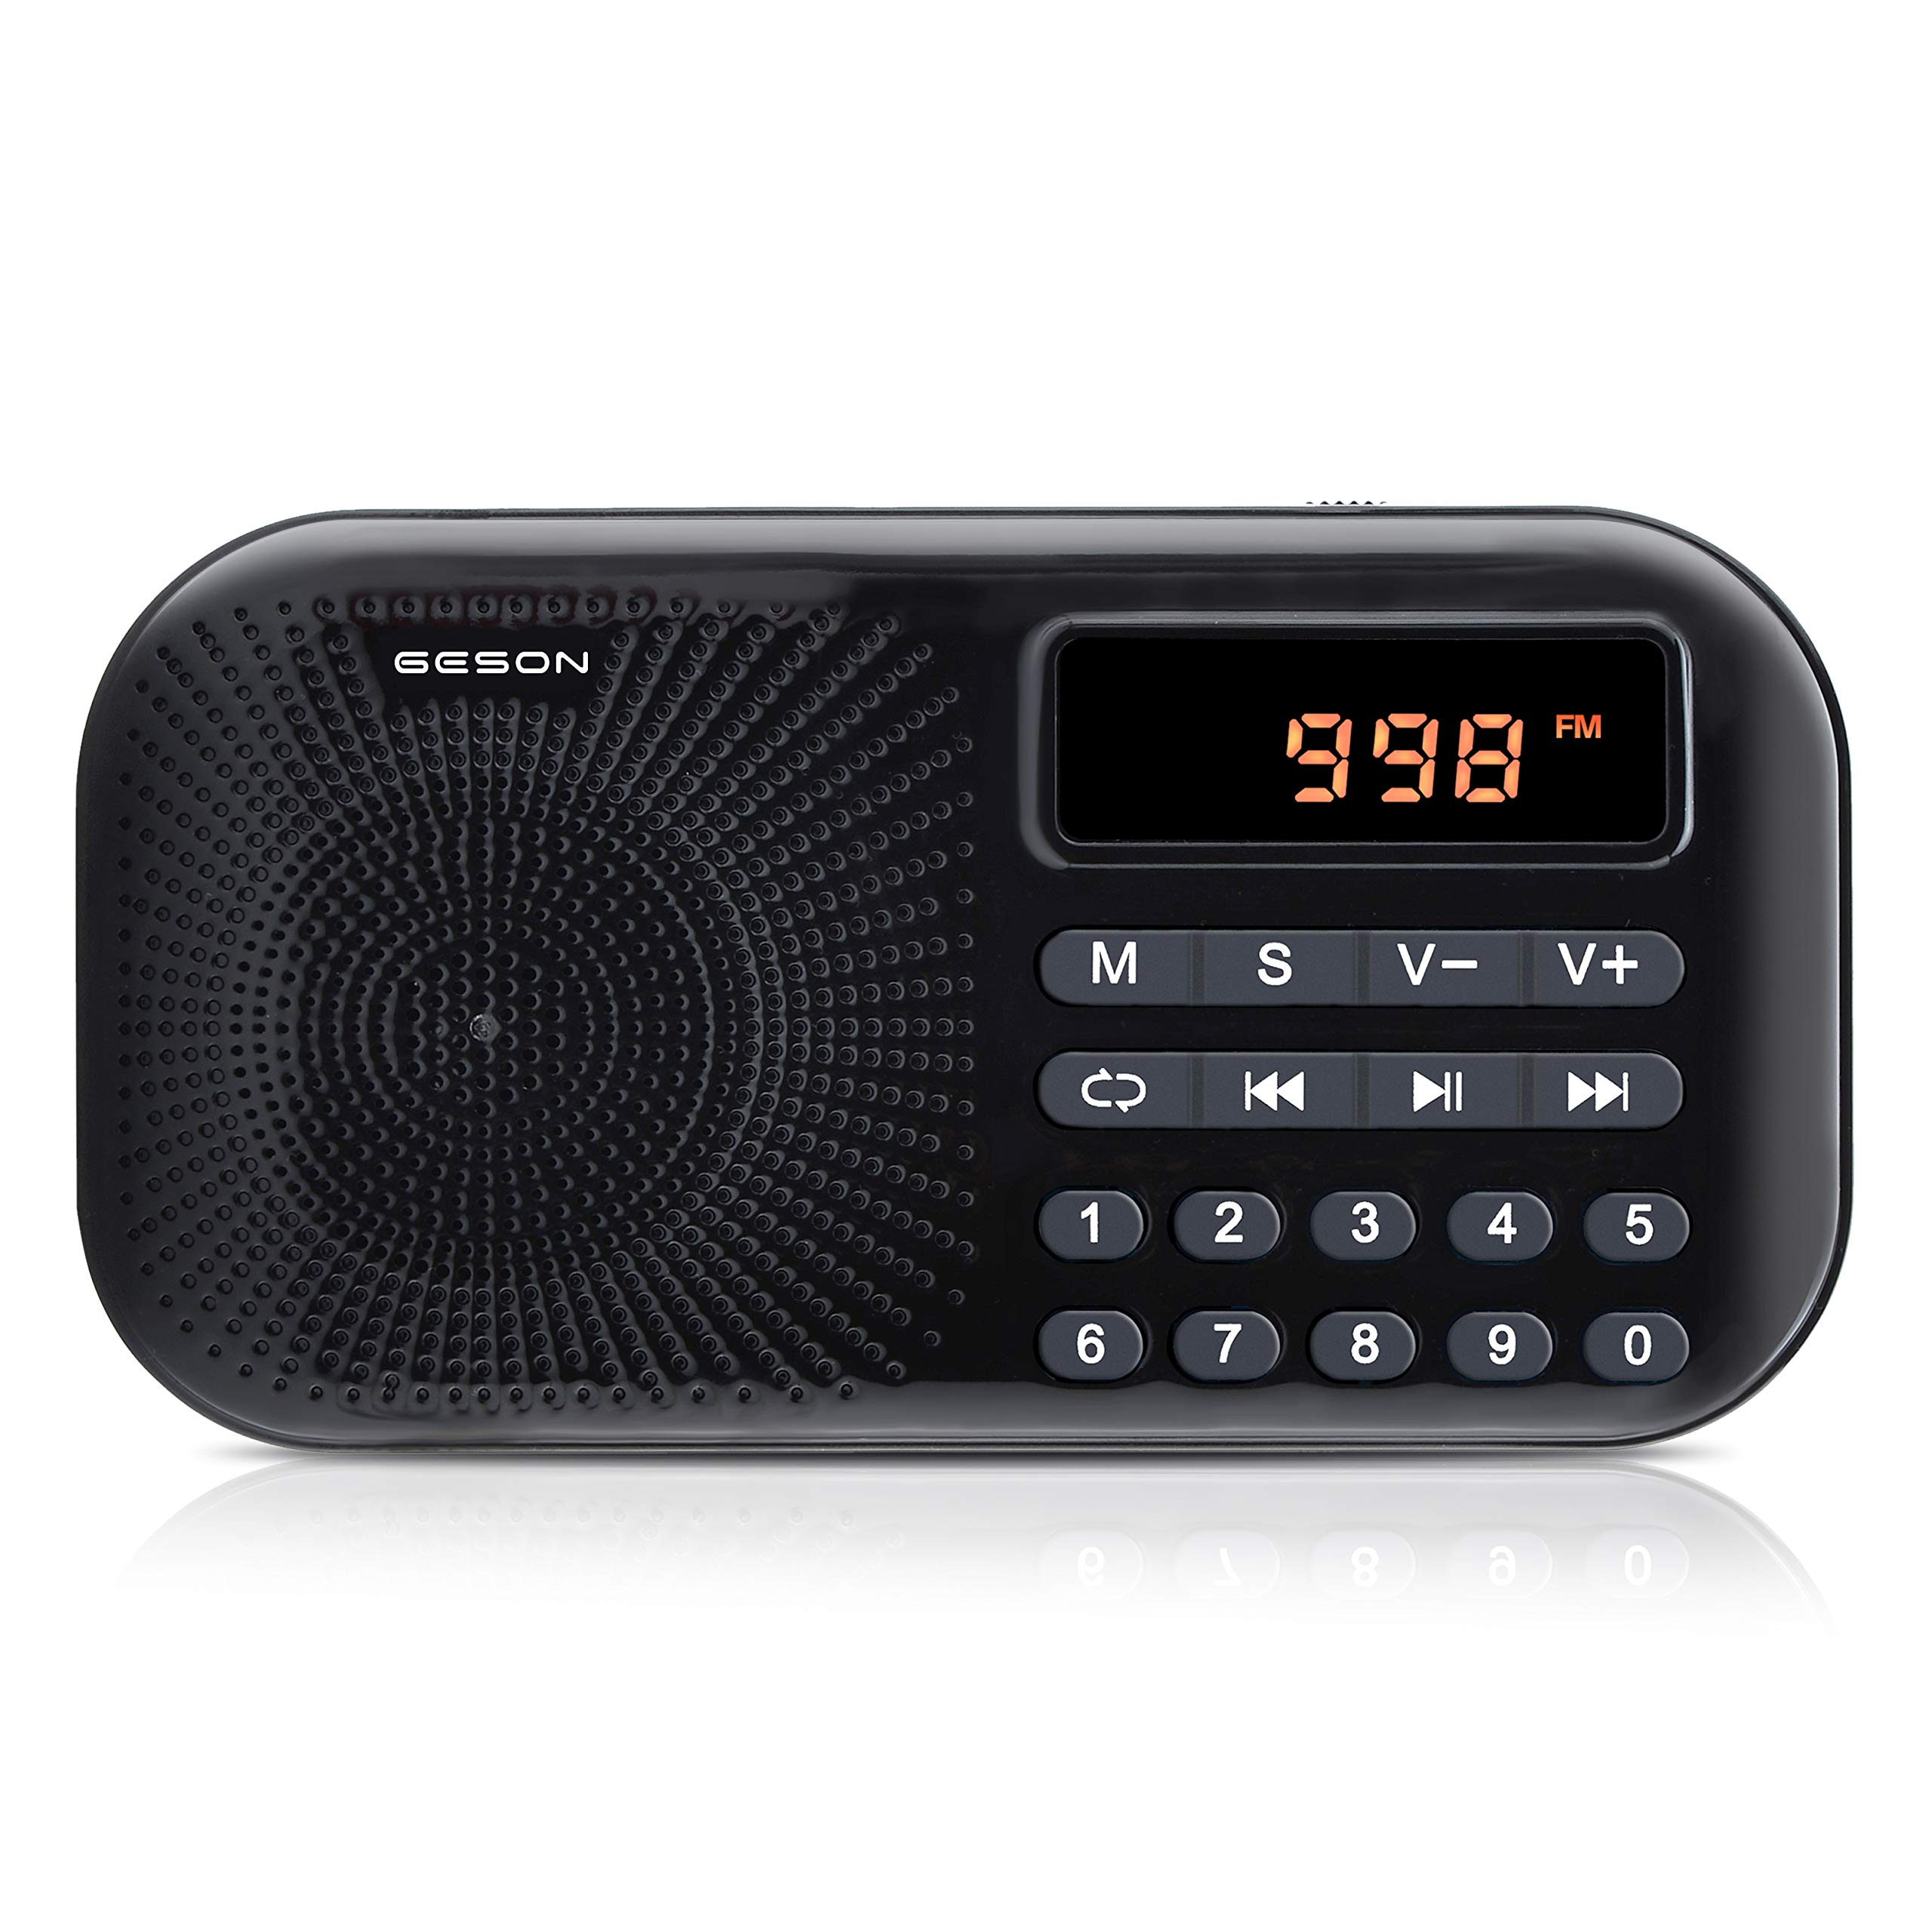 Portable AM FM Radio, Geson Mini Music Radio Player Support Micro SD Card/USB Disk with LED Screen Display(Black)